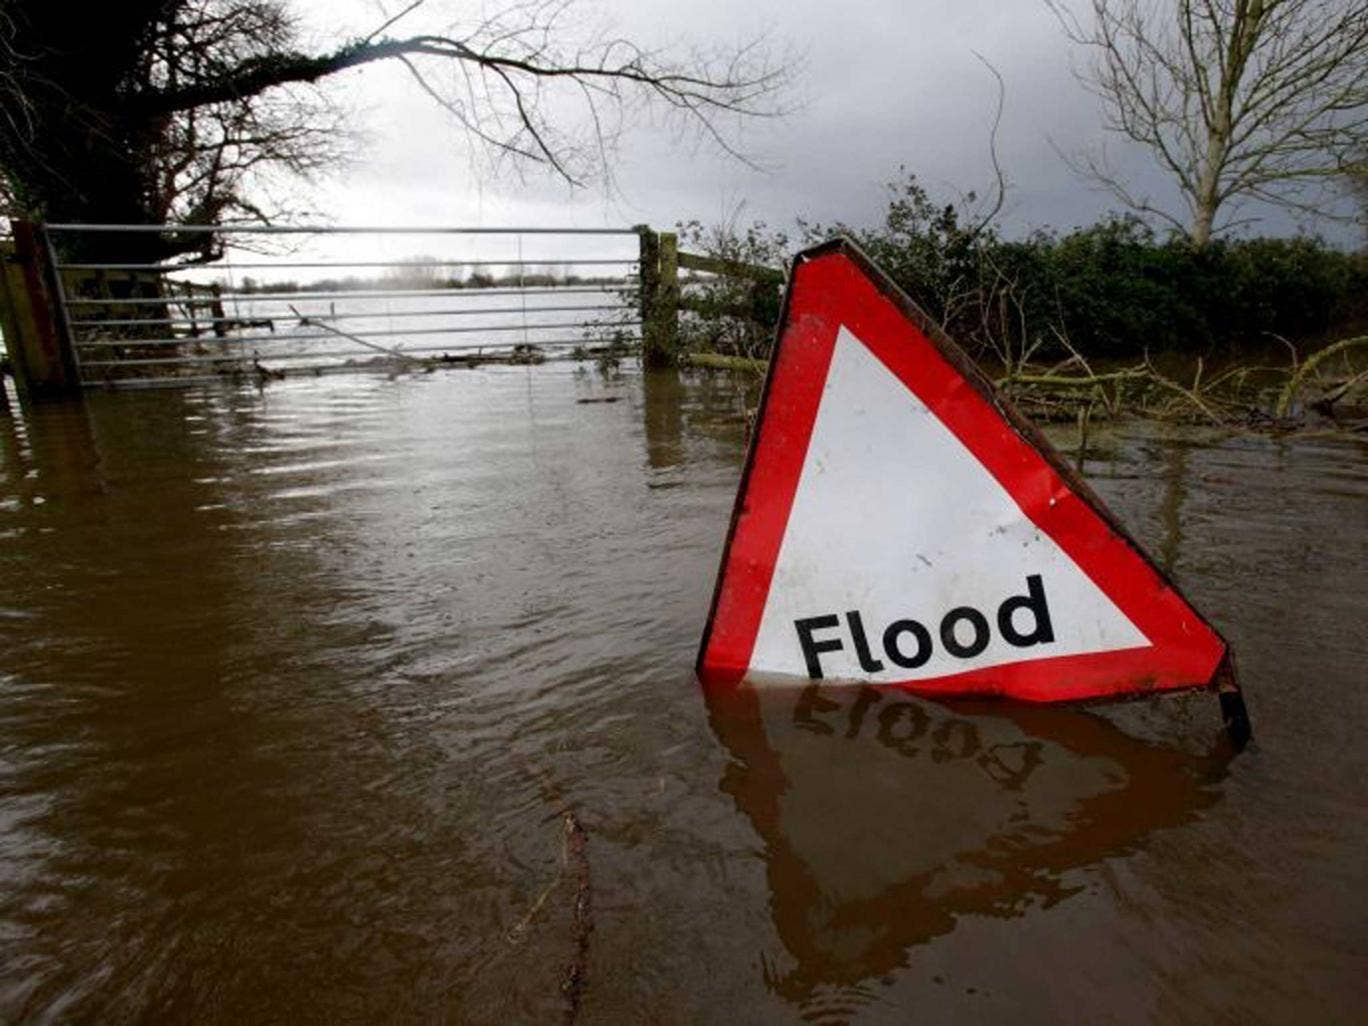 Money down the drain: Could your finances cope if events like a flood left you facing a big bill?